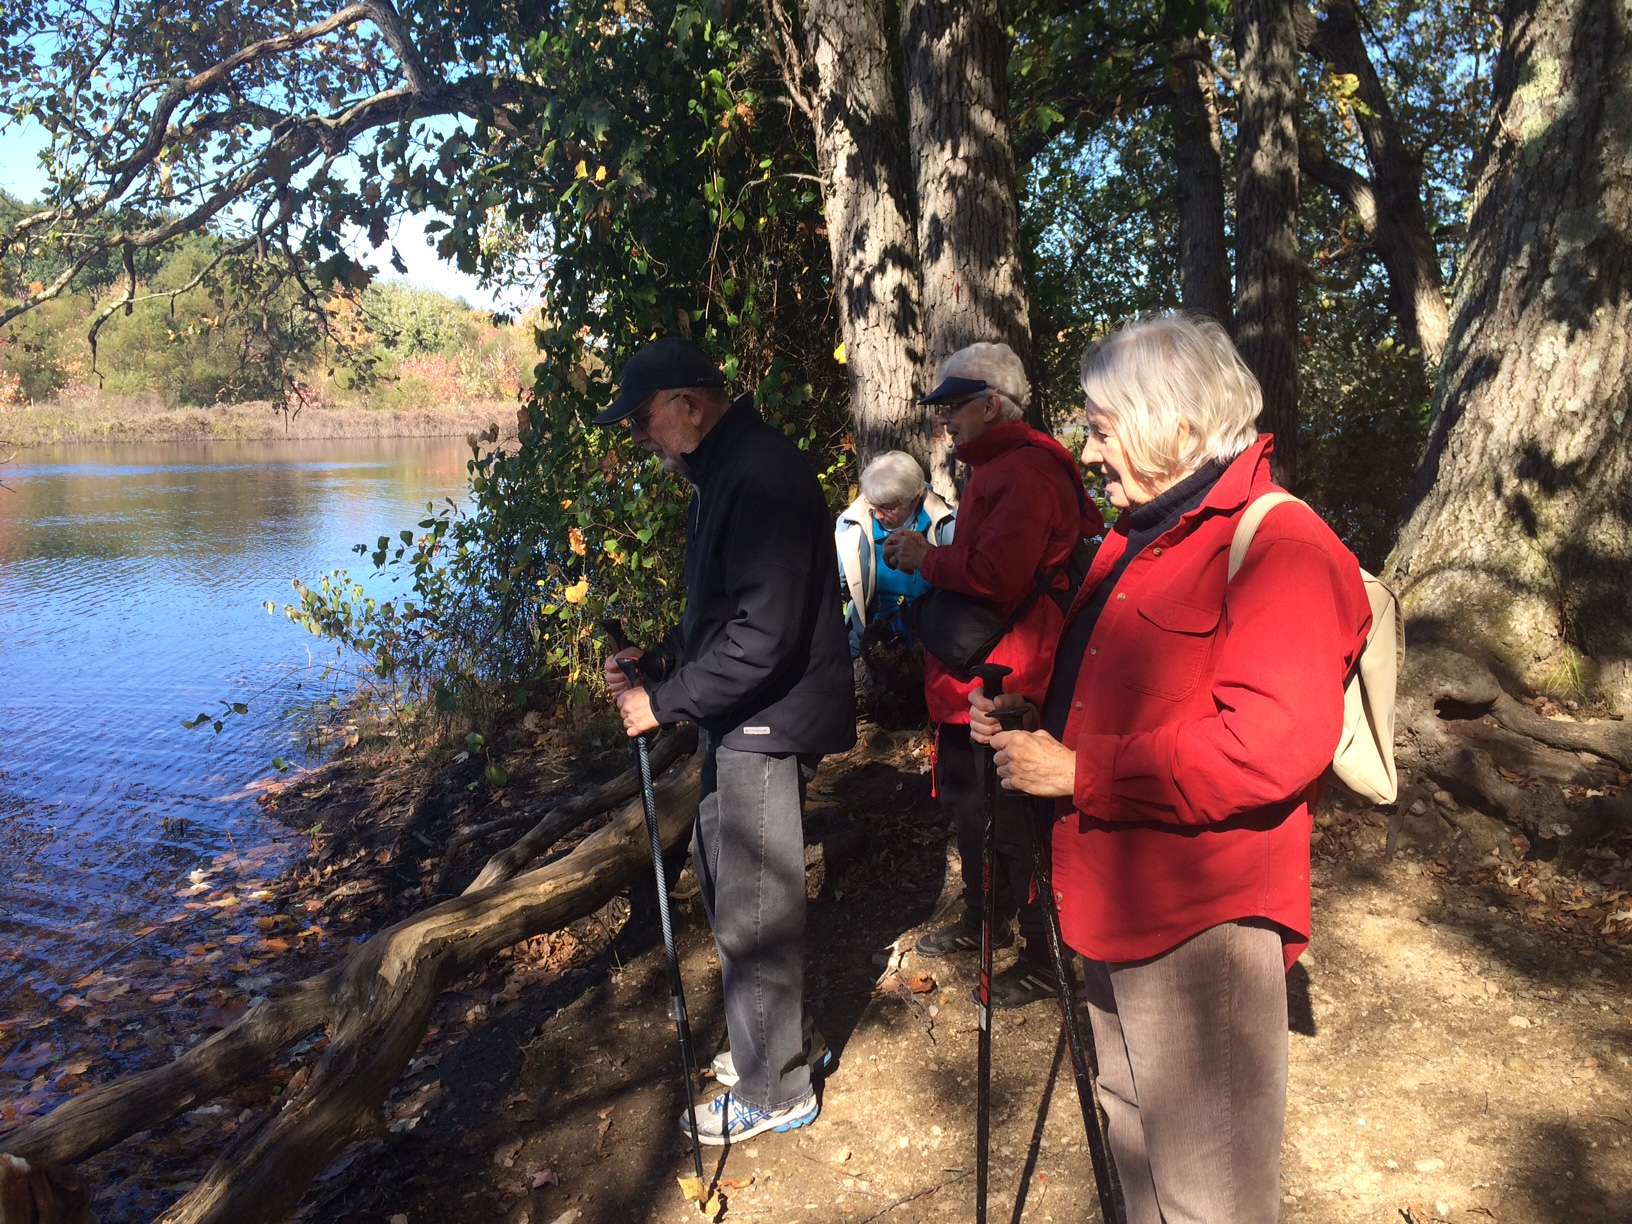 Rescheduled Again to 11/20: Noticing Walk with John Calabria at Flint's Pond